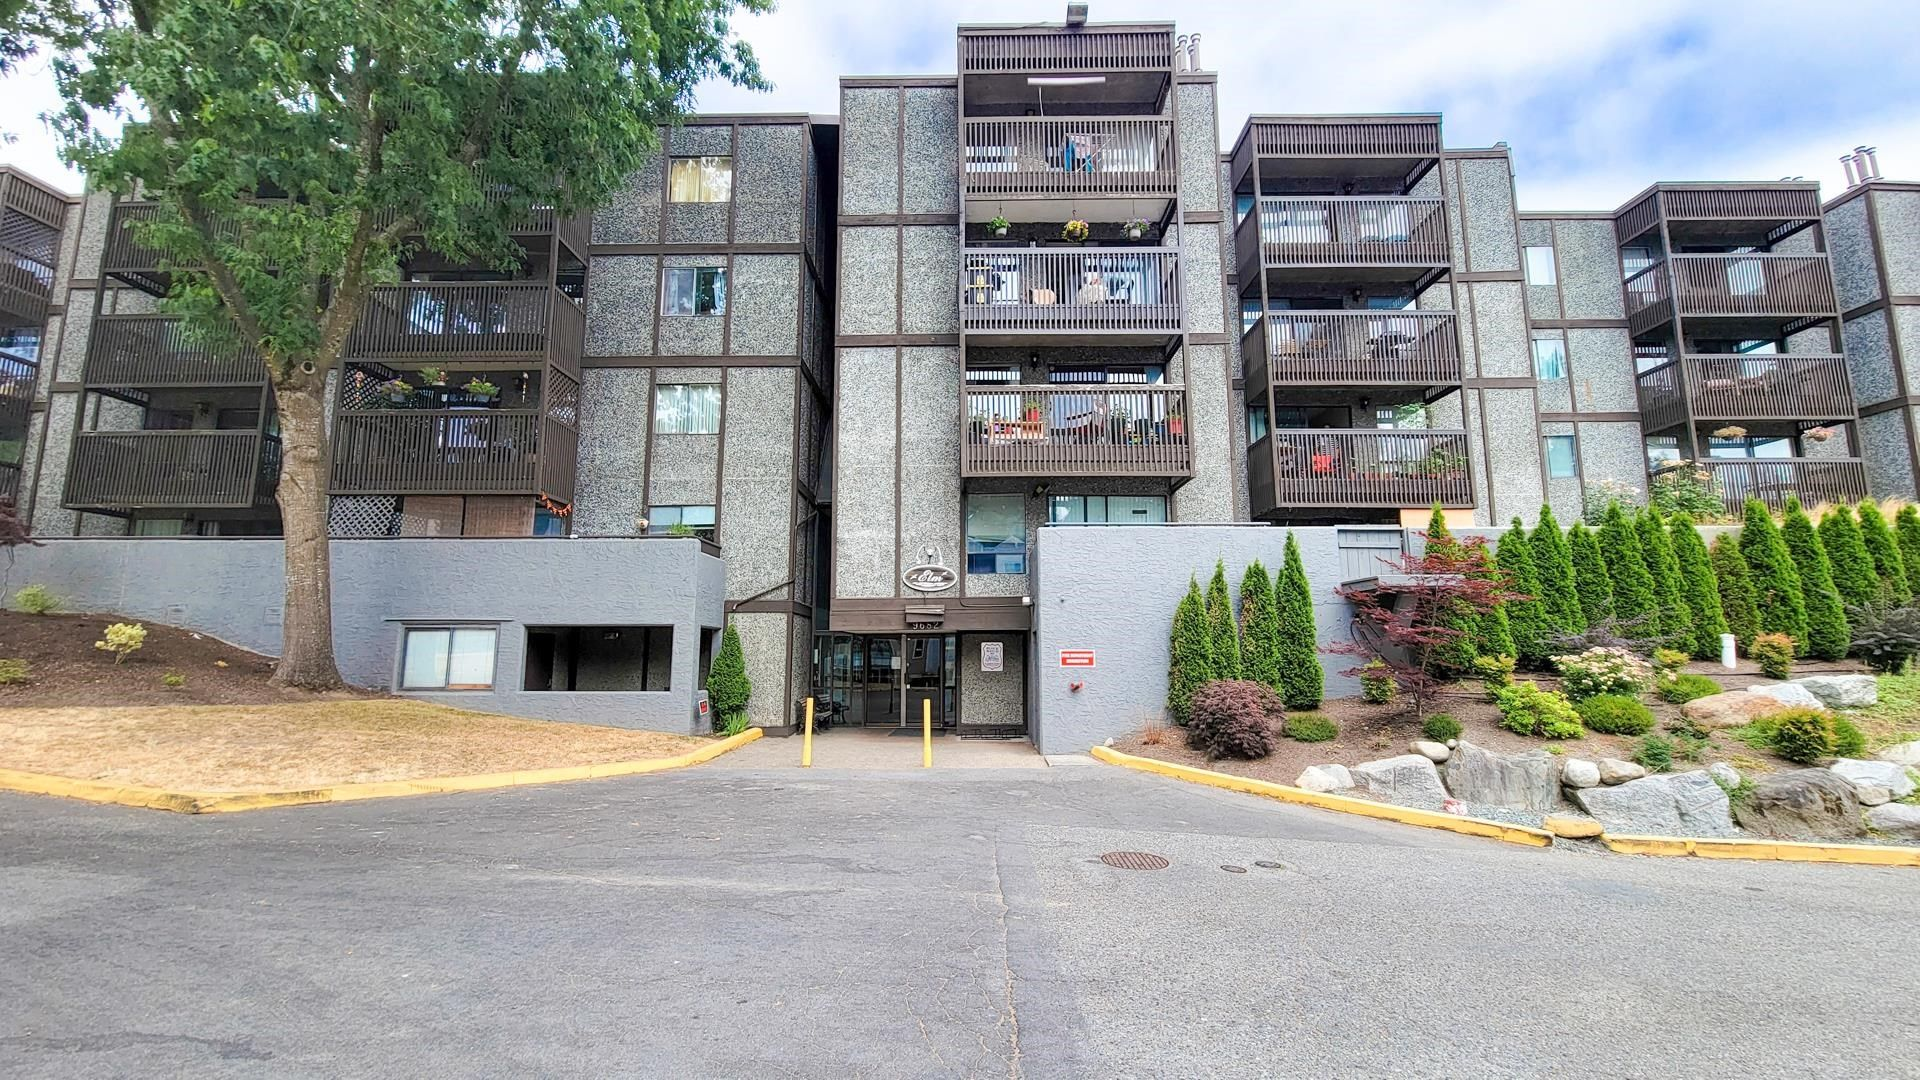 """Main Photo: 213 9682 134 Street in Surrey: Whalley Condo for sale in """"PARKWOODS - ELM"""" (North Surrey)  : MLS®# R2622078"""